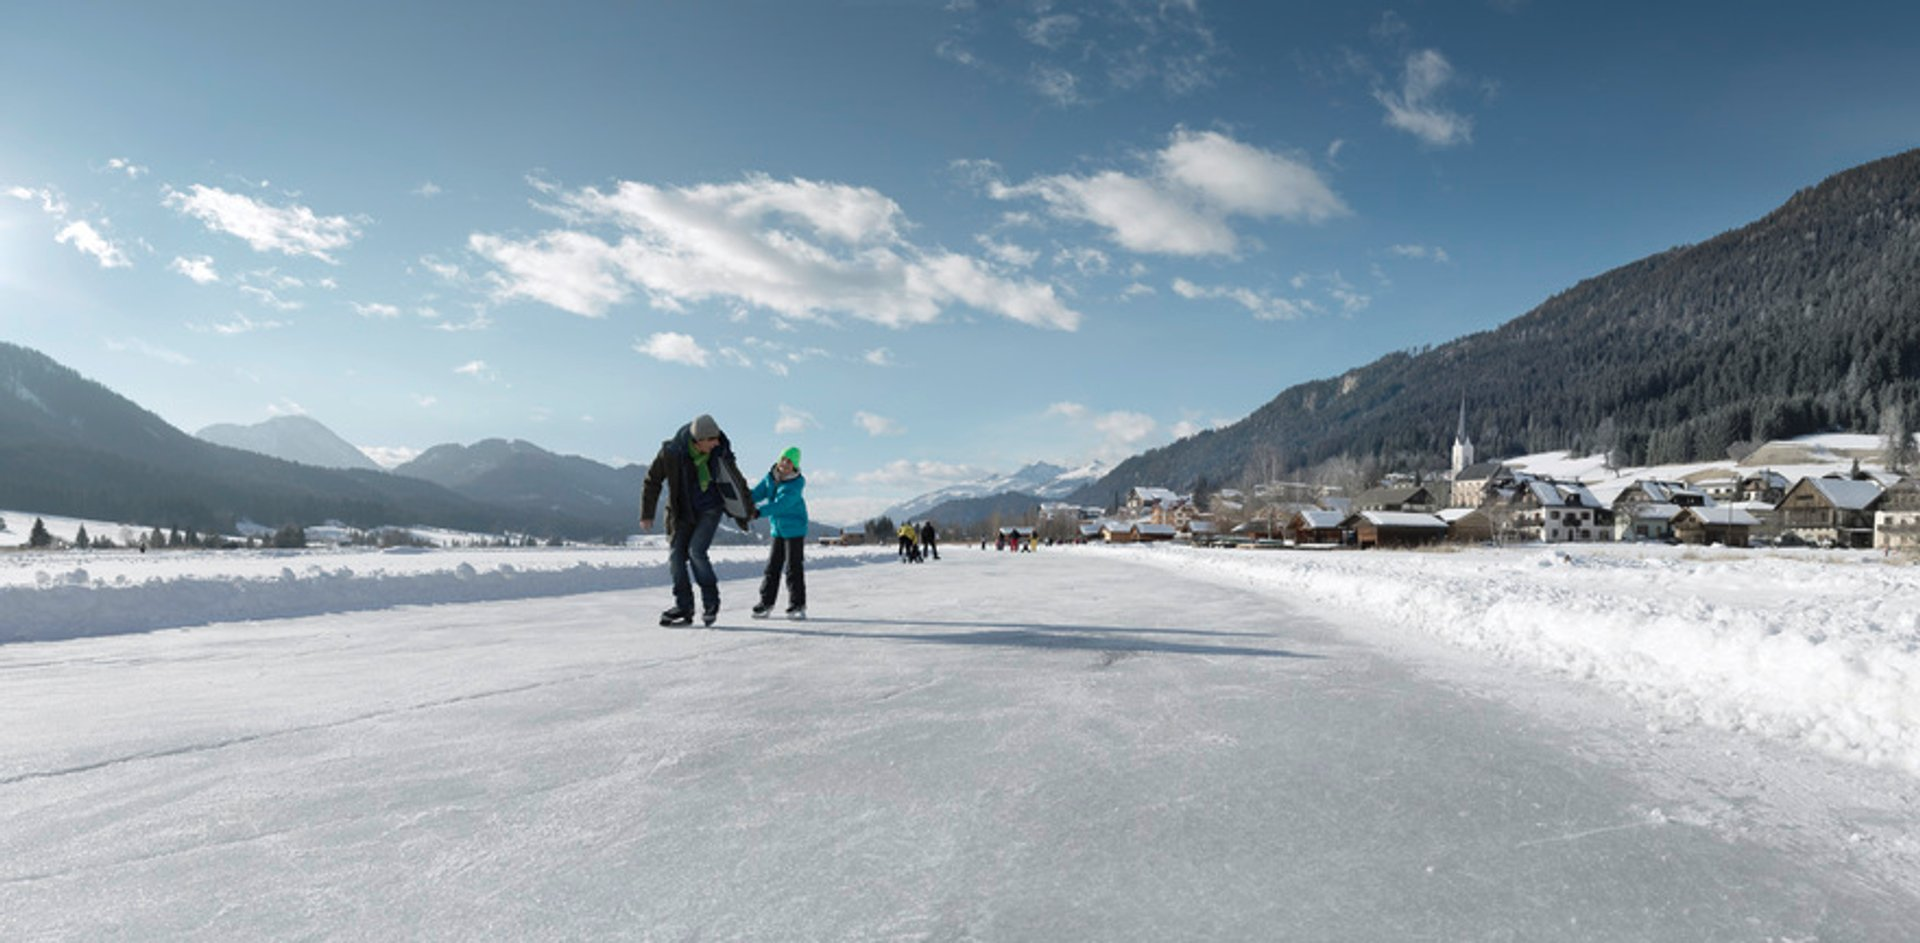 Ice Skating in Austria - Best Season 2020